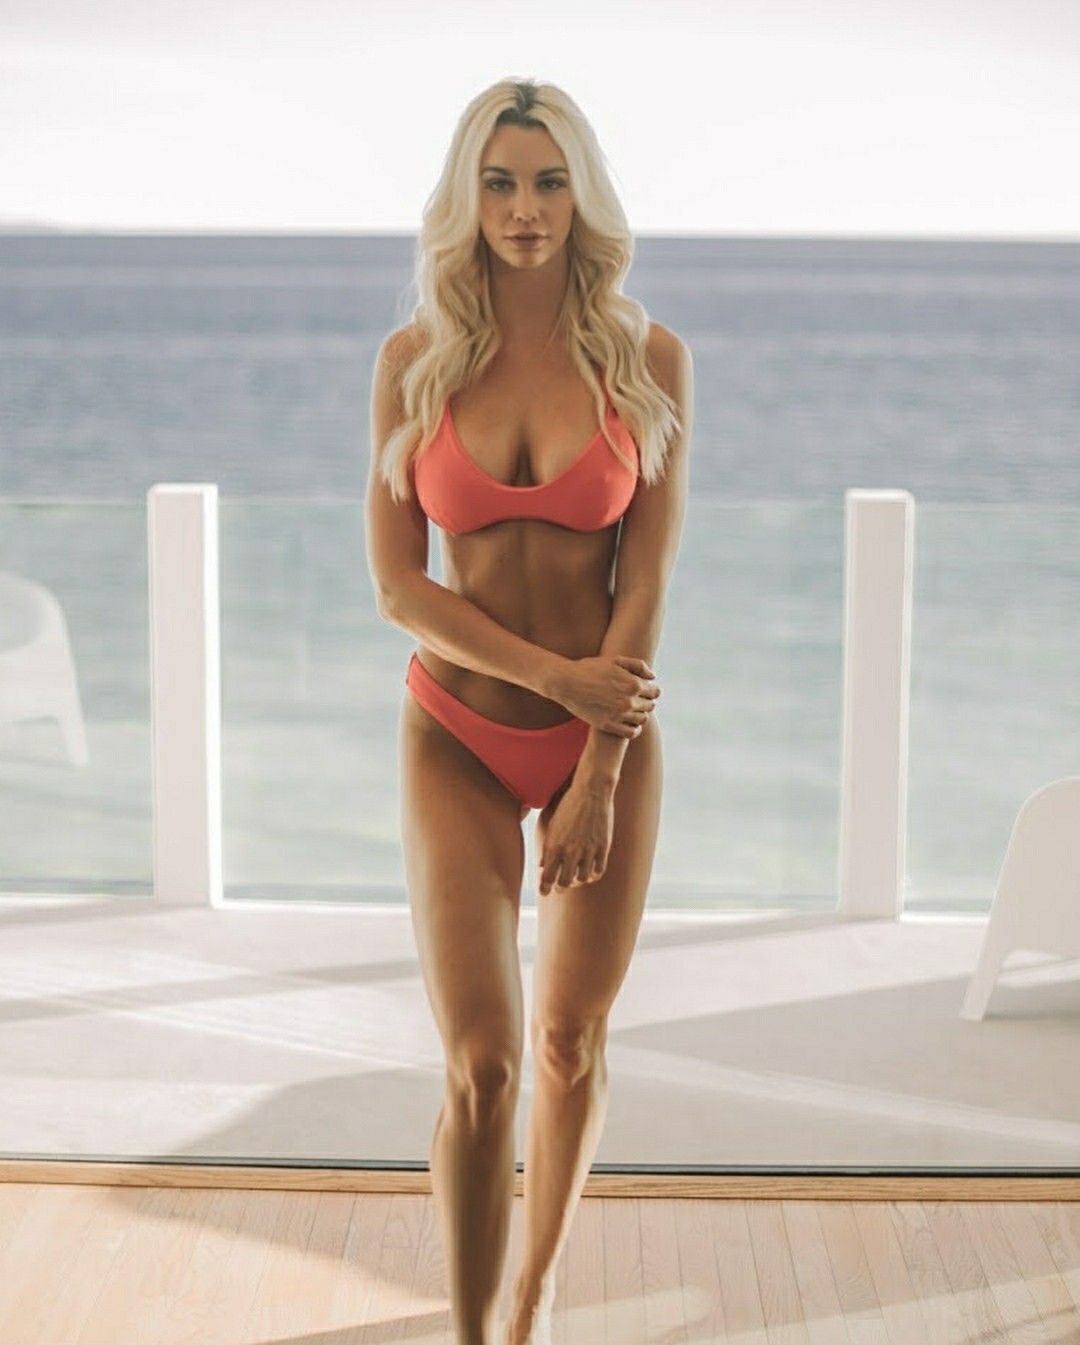 Caitlin Arnett, Fashion Model | Welcome To The 007 World!